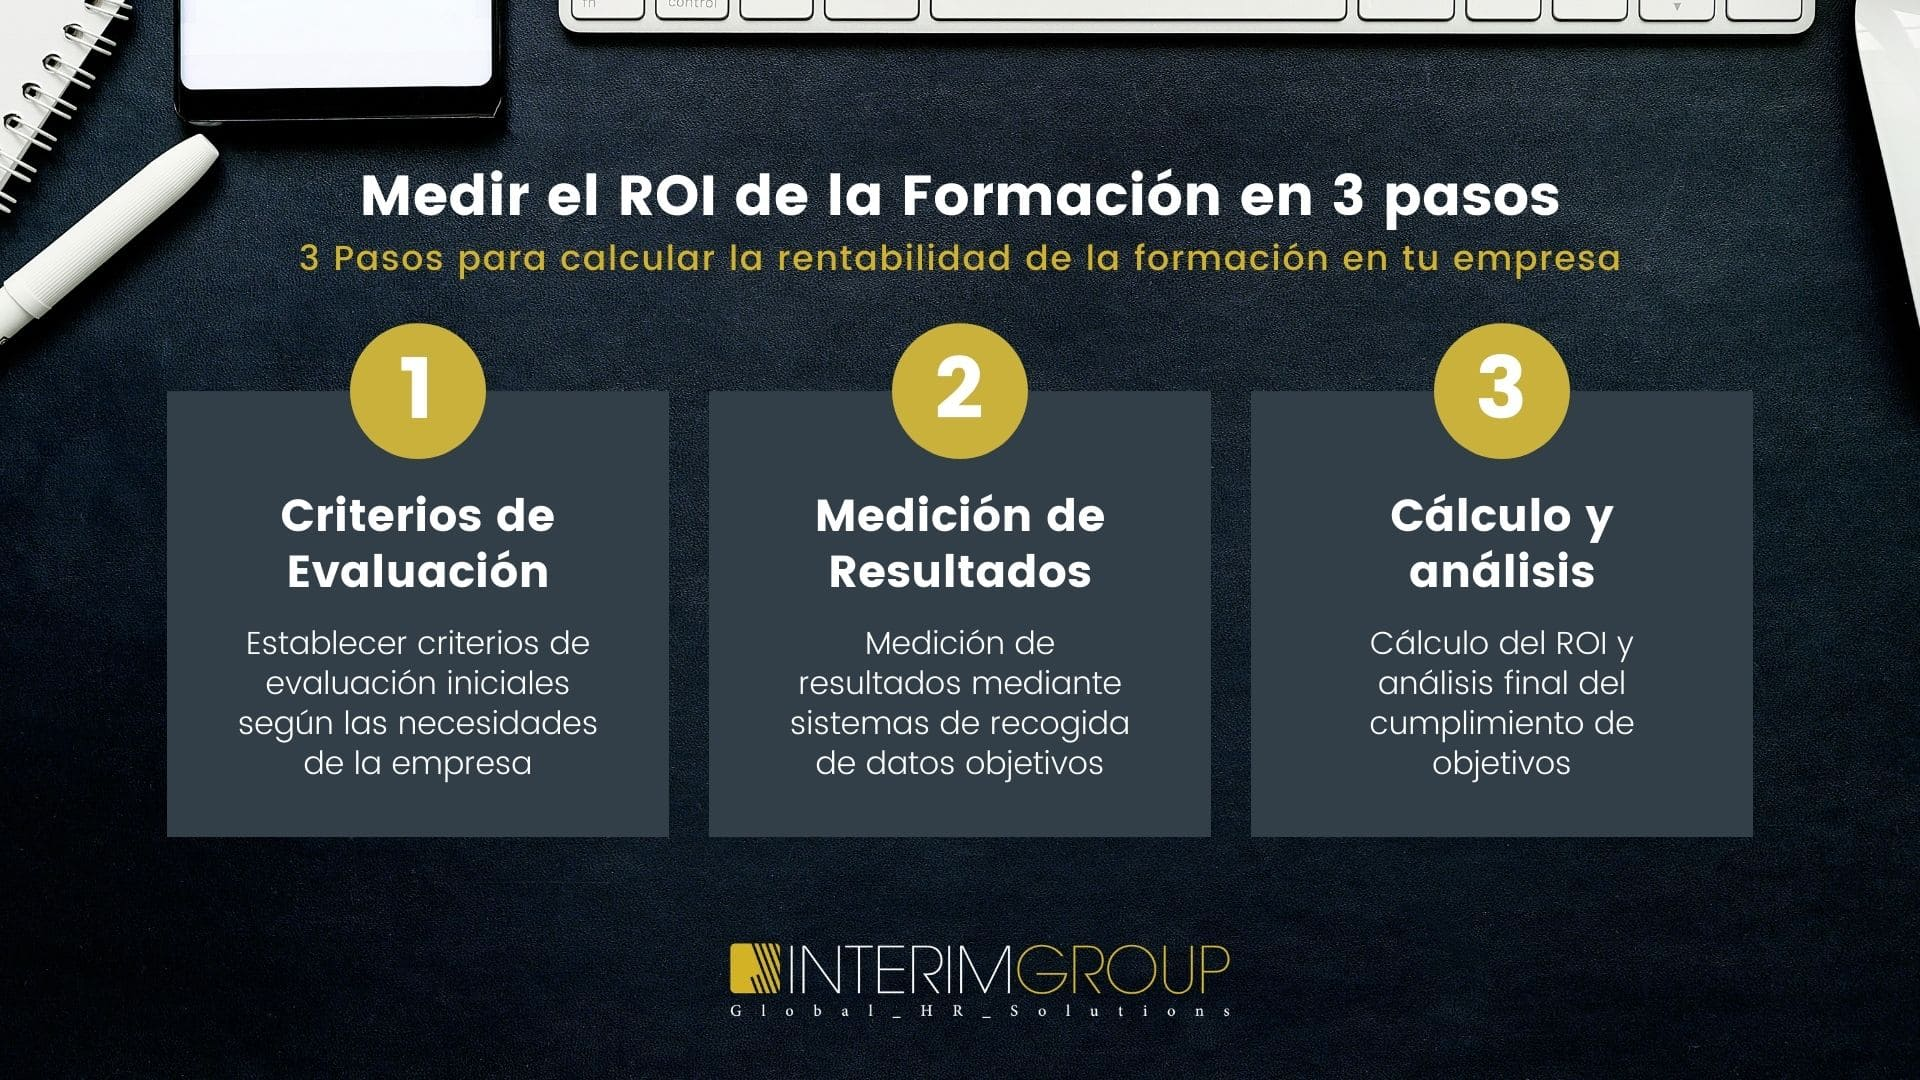 Formación-rentable-empresas-ROI_INTERIM-GROUP